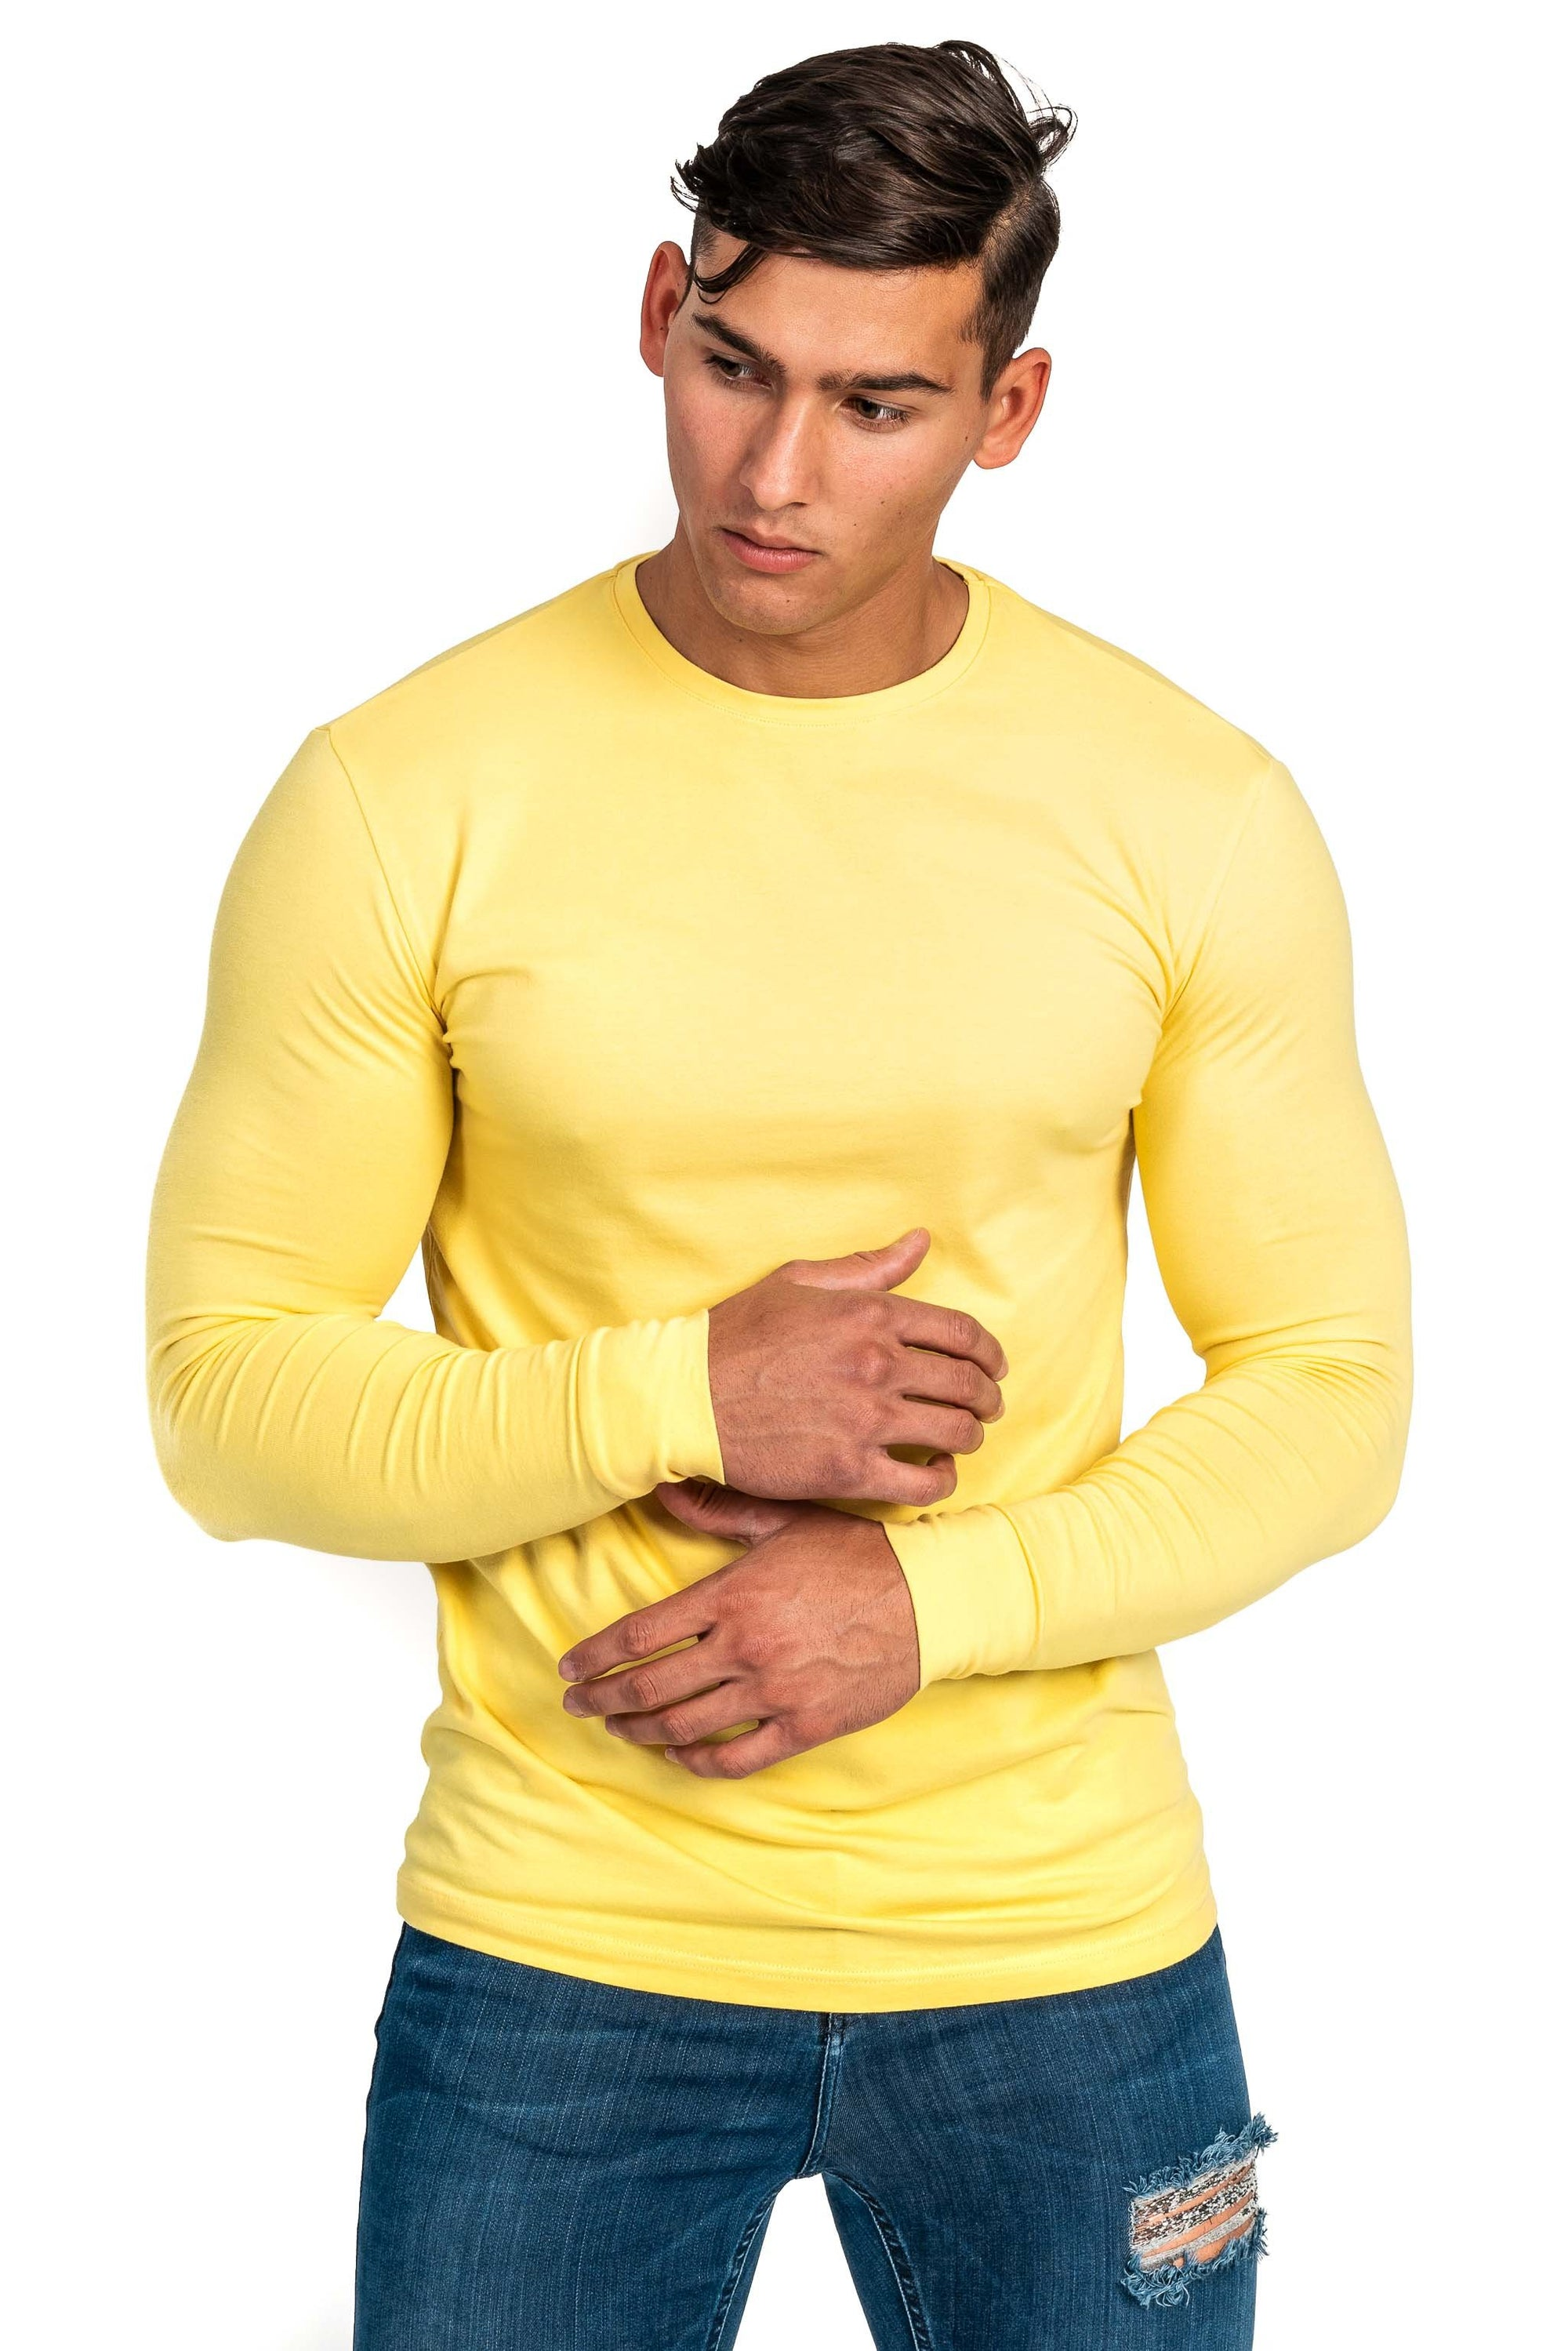 Mens Long Sleeve T Shirt - Aspen Yellow